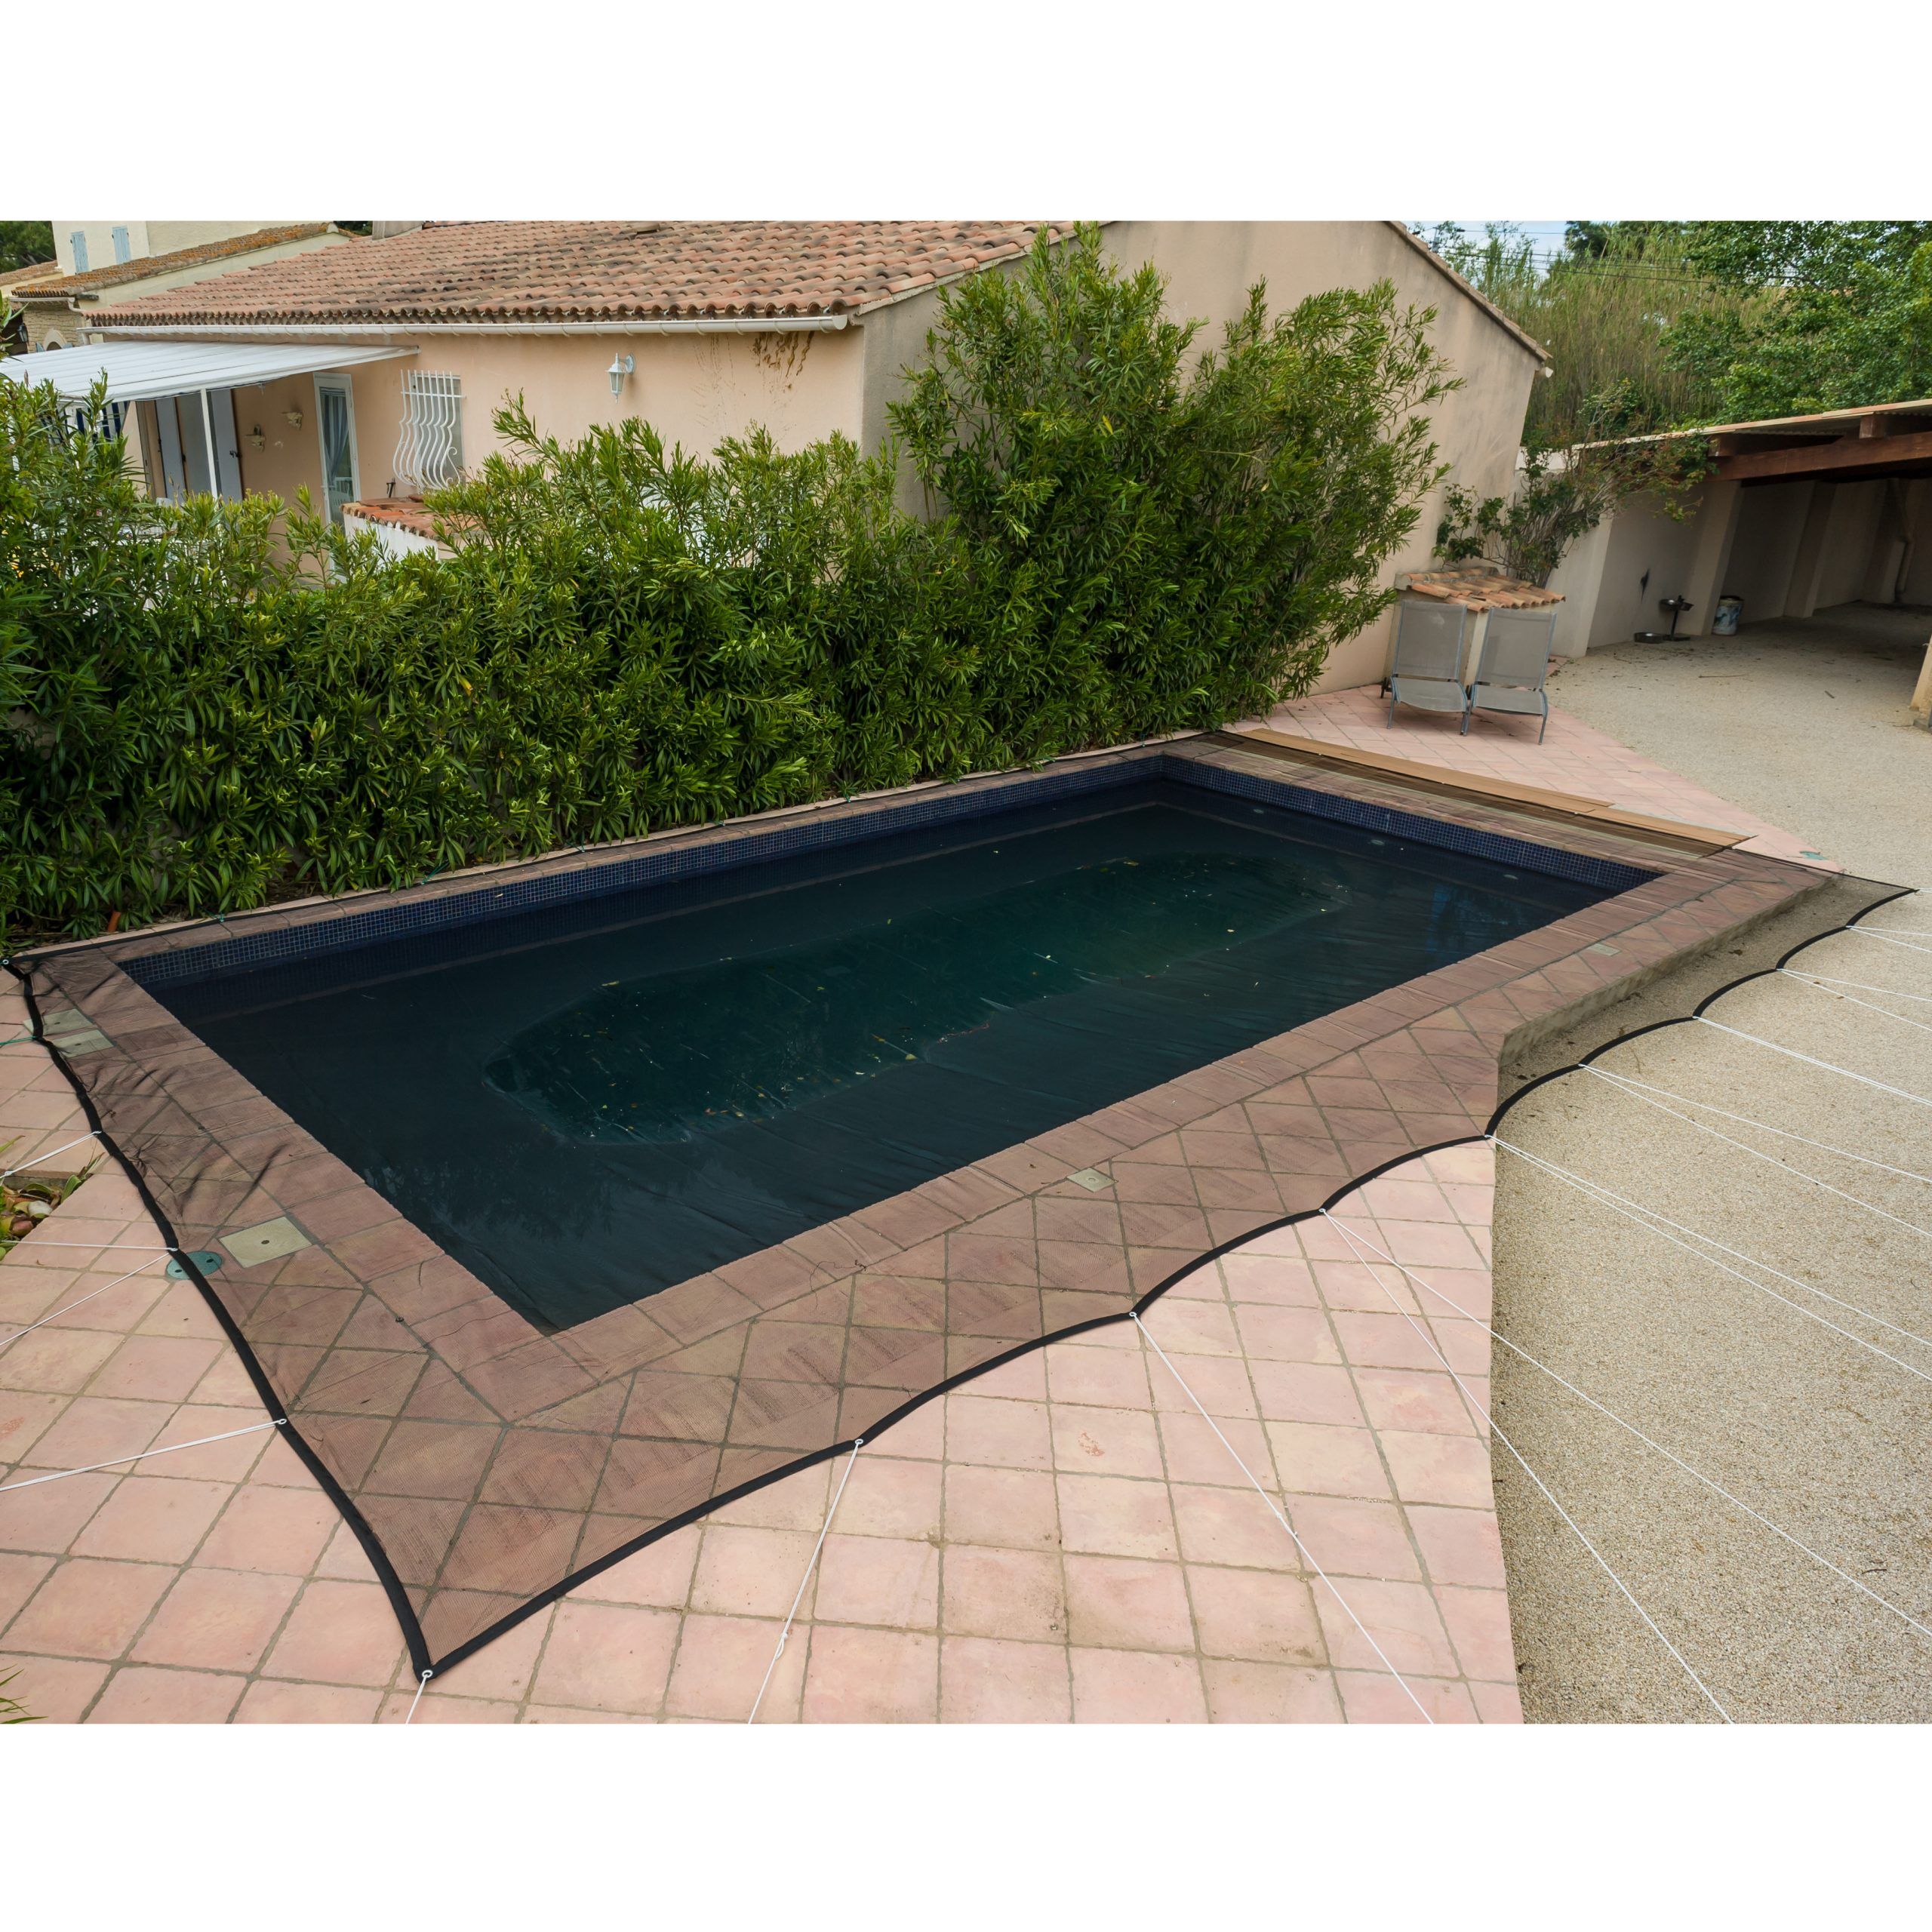 Filet De Protection Piscine 100G/m² Werkapro (8X14M) encequiconcerne Filet Protection Piscine